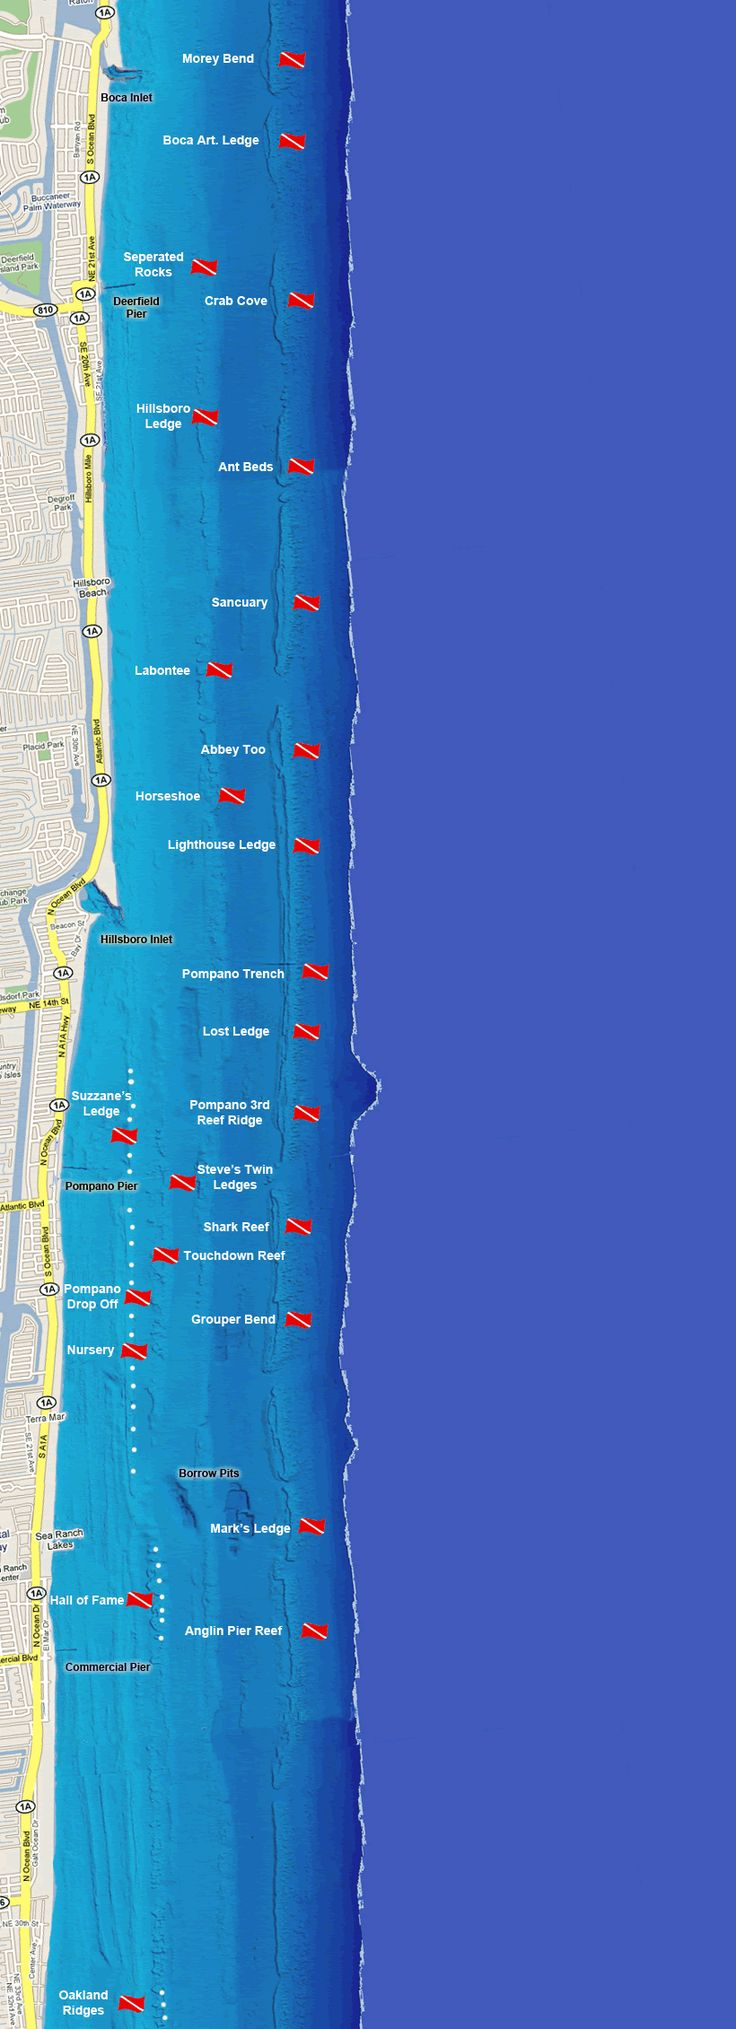 South Florida Scuba & Snorkel Dive Sites